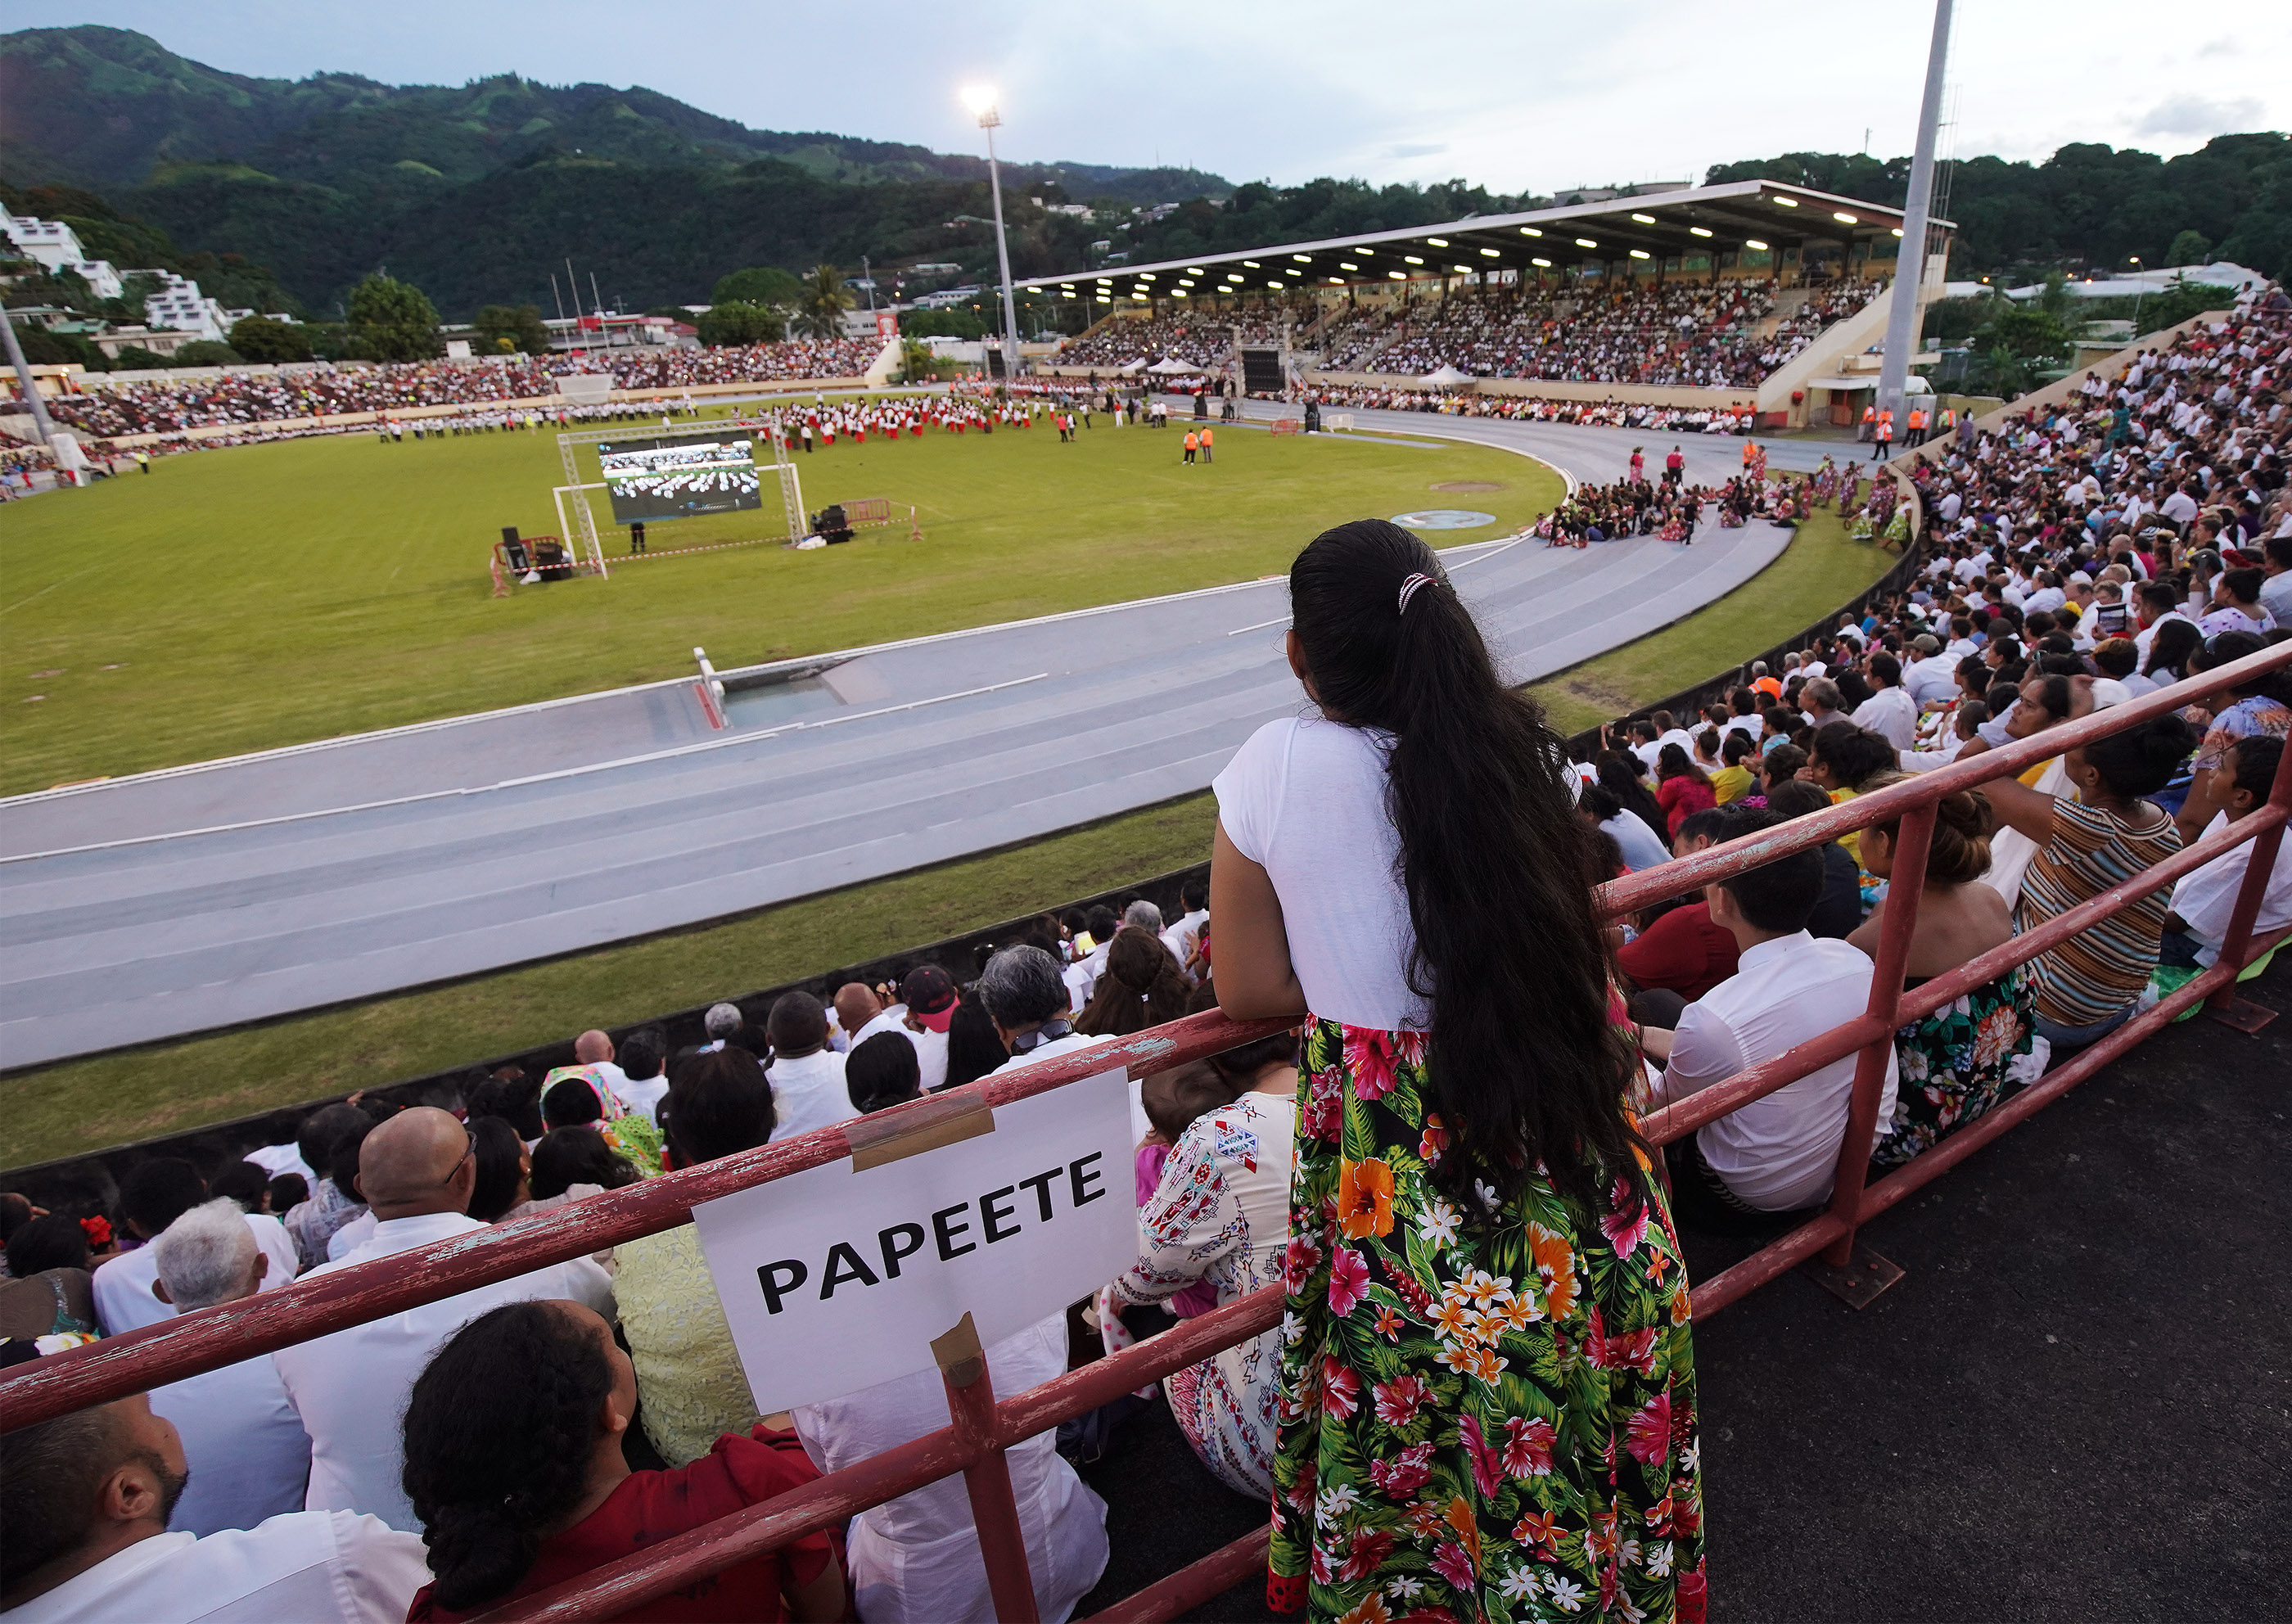 Attendees watch performers during a Tahiti cultural program in Papeete, Tahiti, on May 24, 2019.